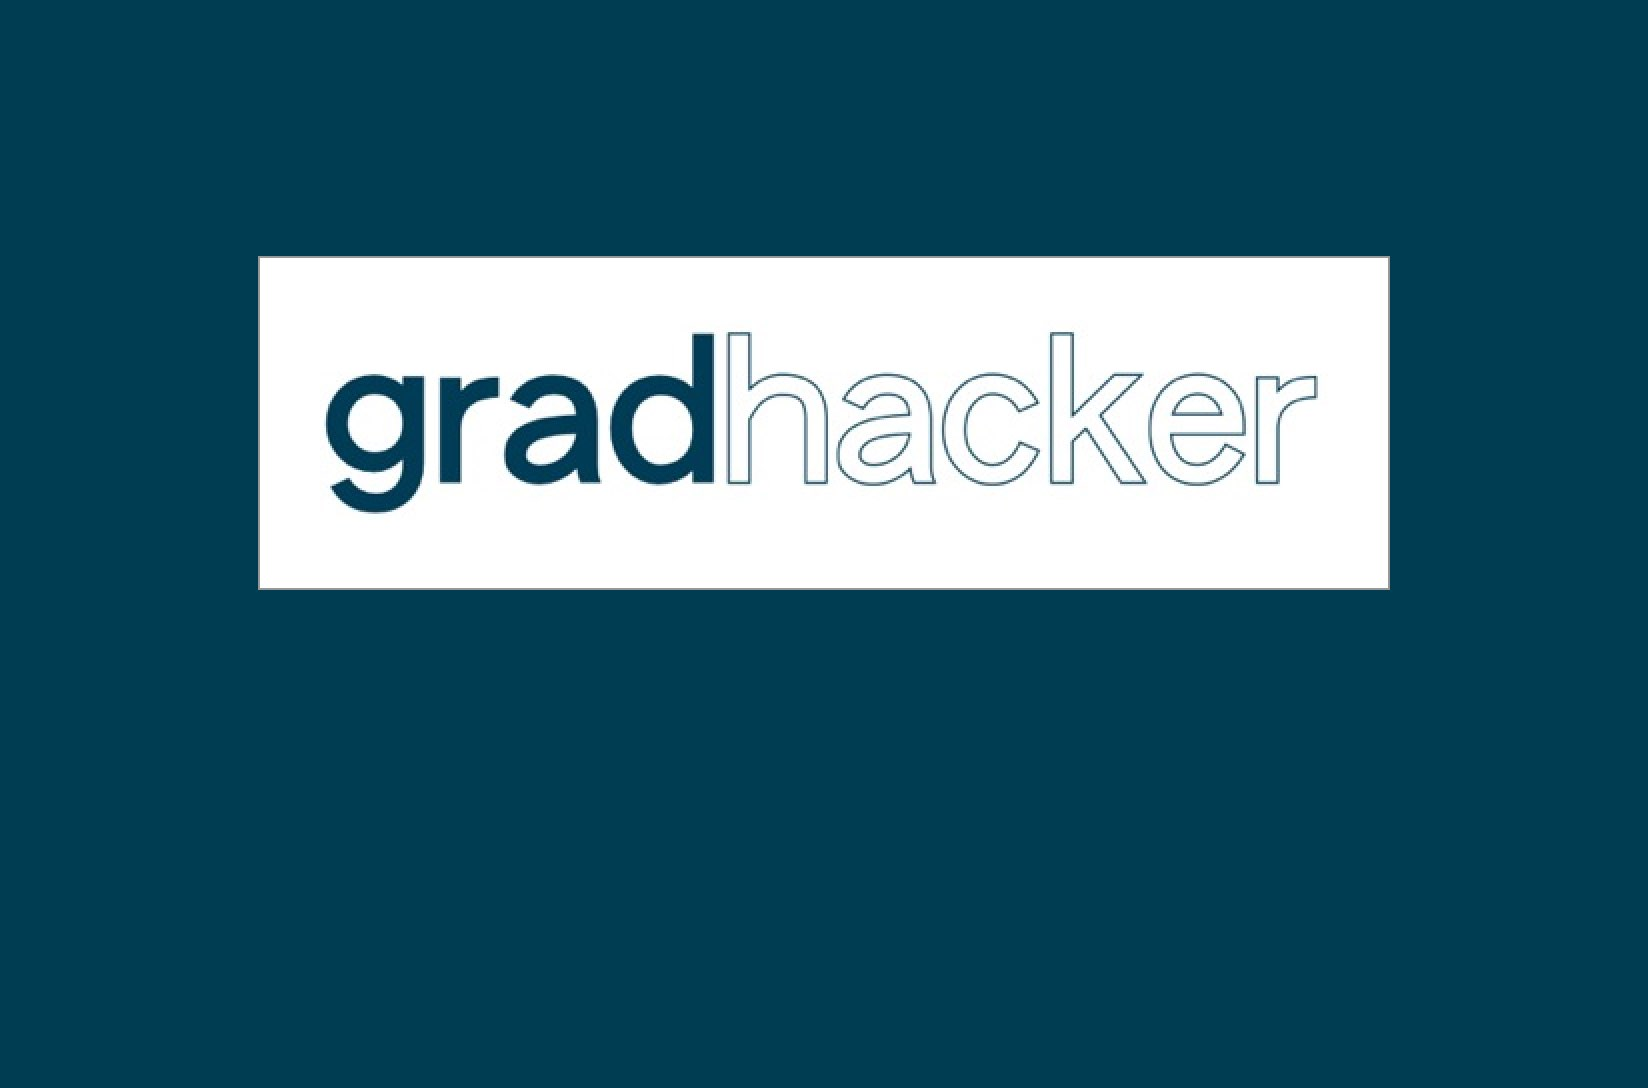 GradHacker Imagery